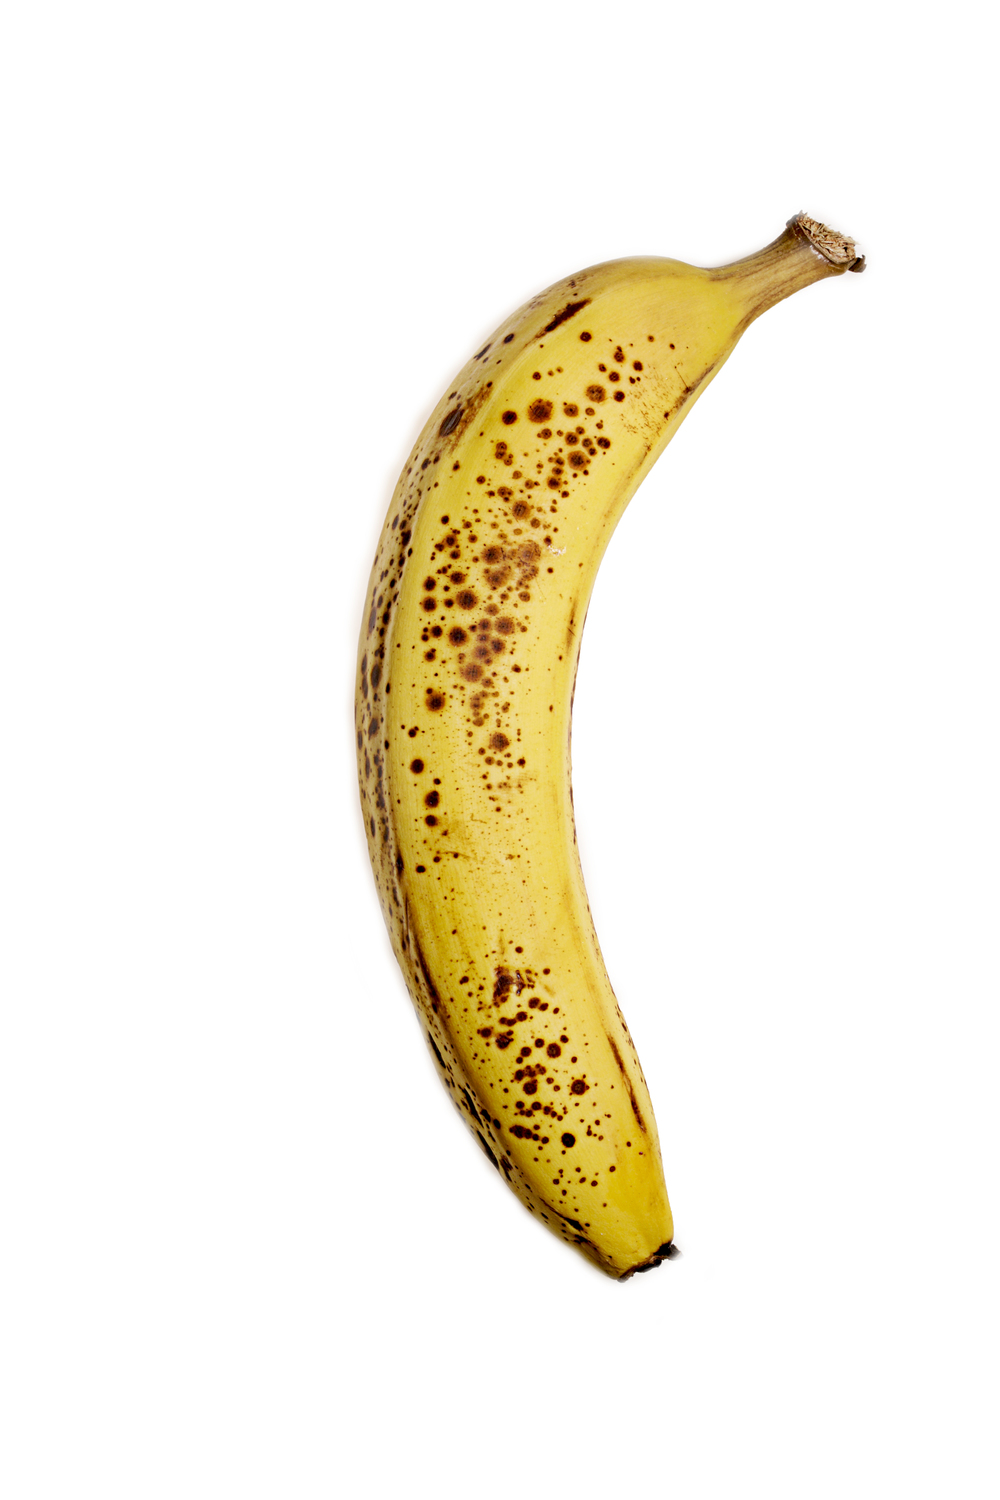 BananaOnWhite01.jpg